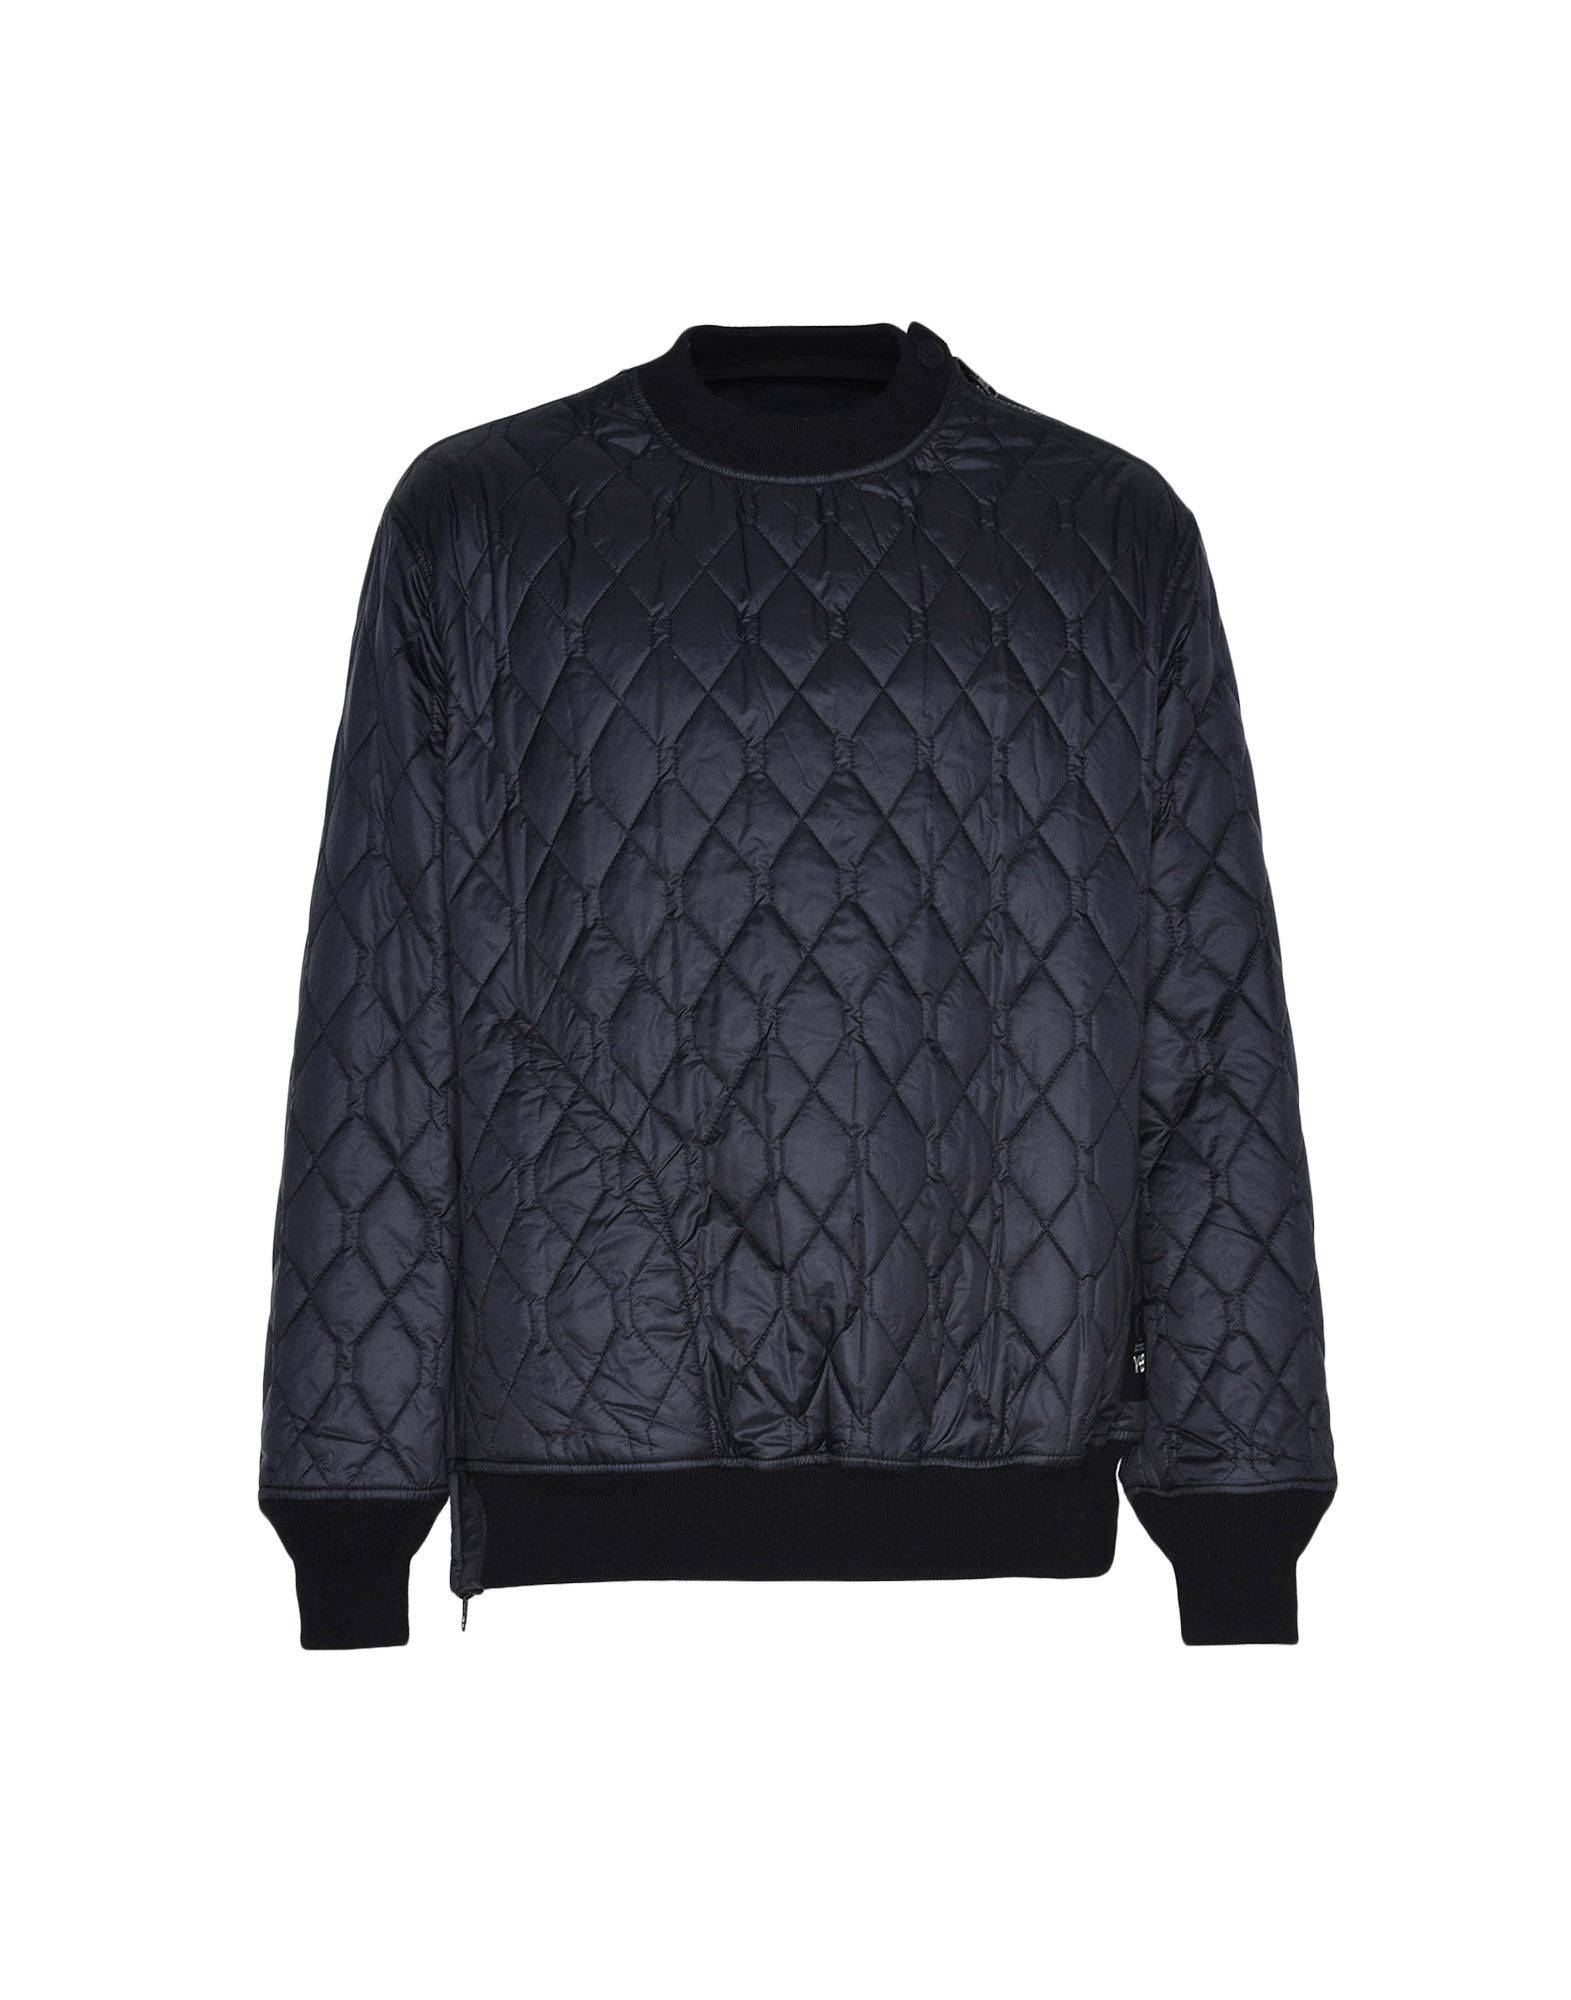 Y-3 Y-3 Quilted Sweater Sweatshirt Man f